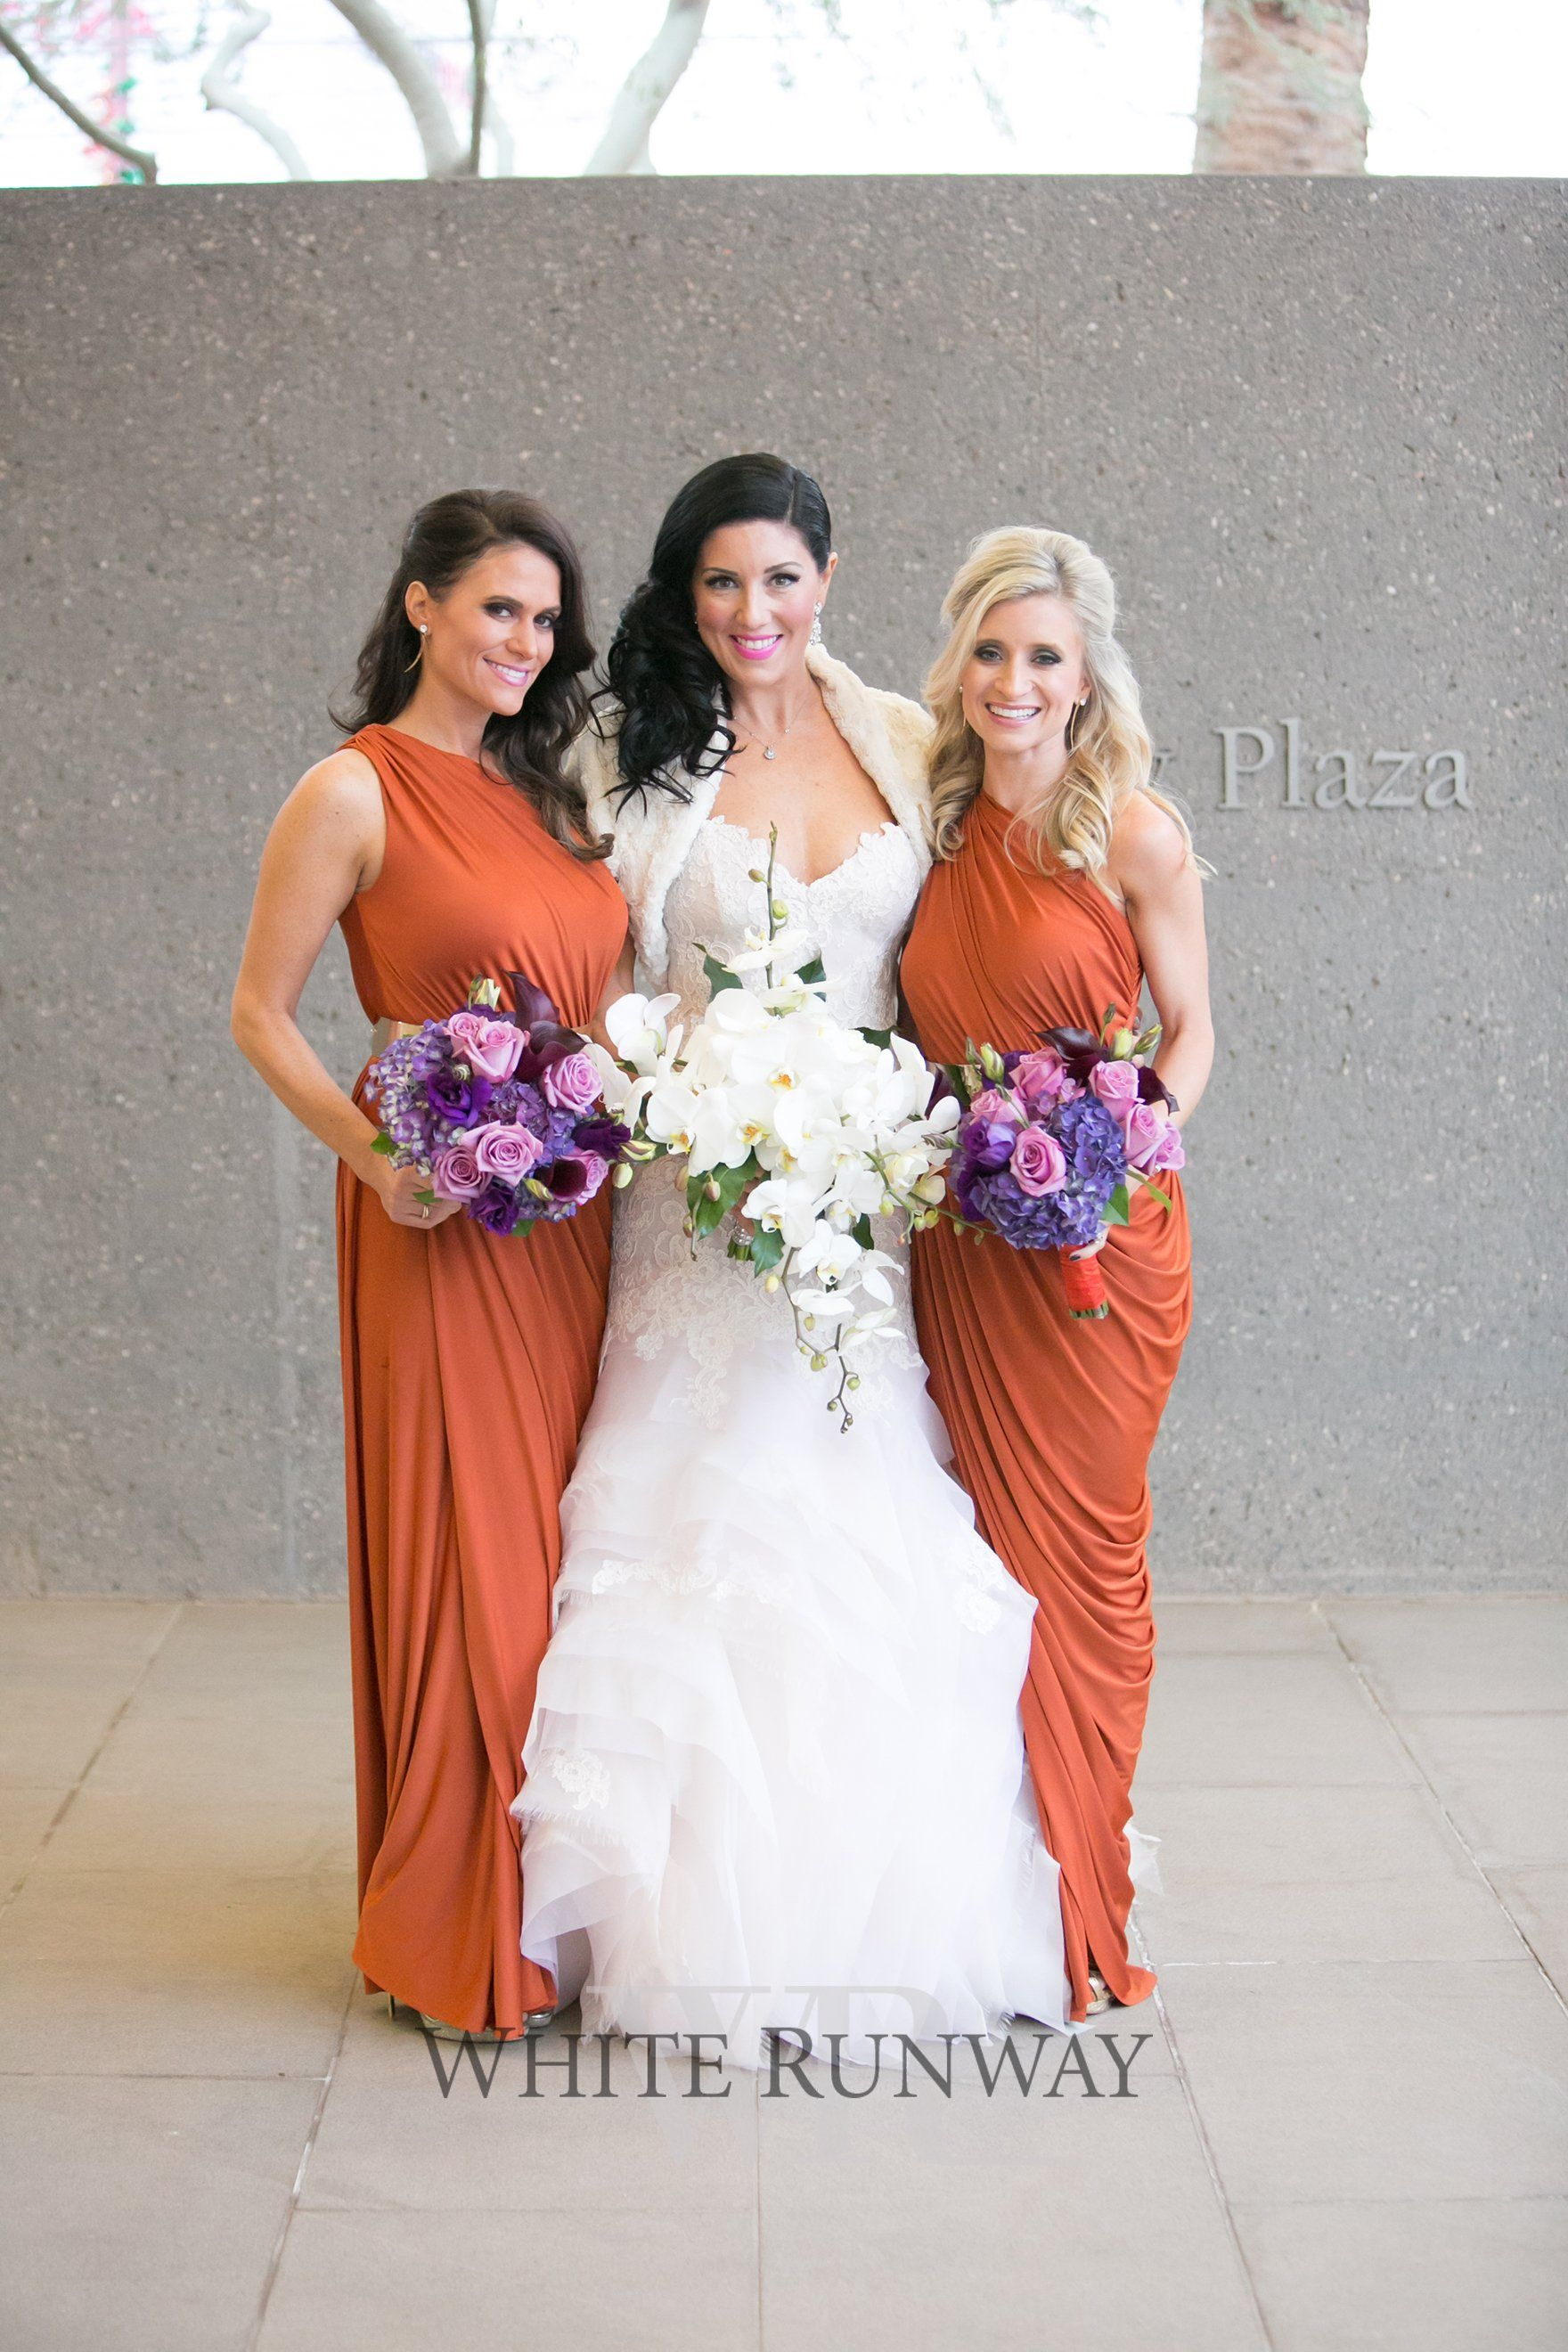 Our stunning bride leah bold all the way from usa chose the our stunning bride leah bold all the way from usa chose the ingrid dress by pia gladys perey in rust for her bridesmaids the beautiful bright bouquets ombrellifo Images